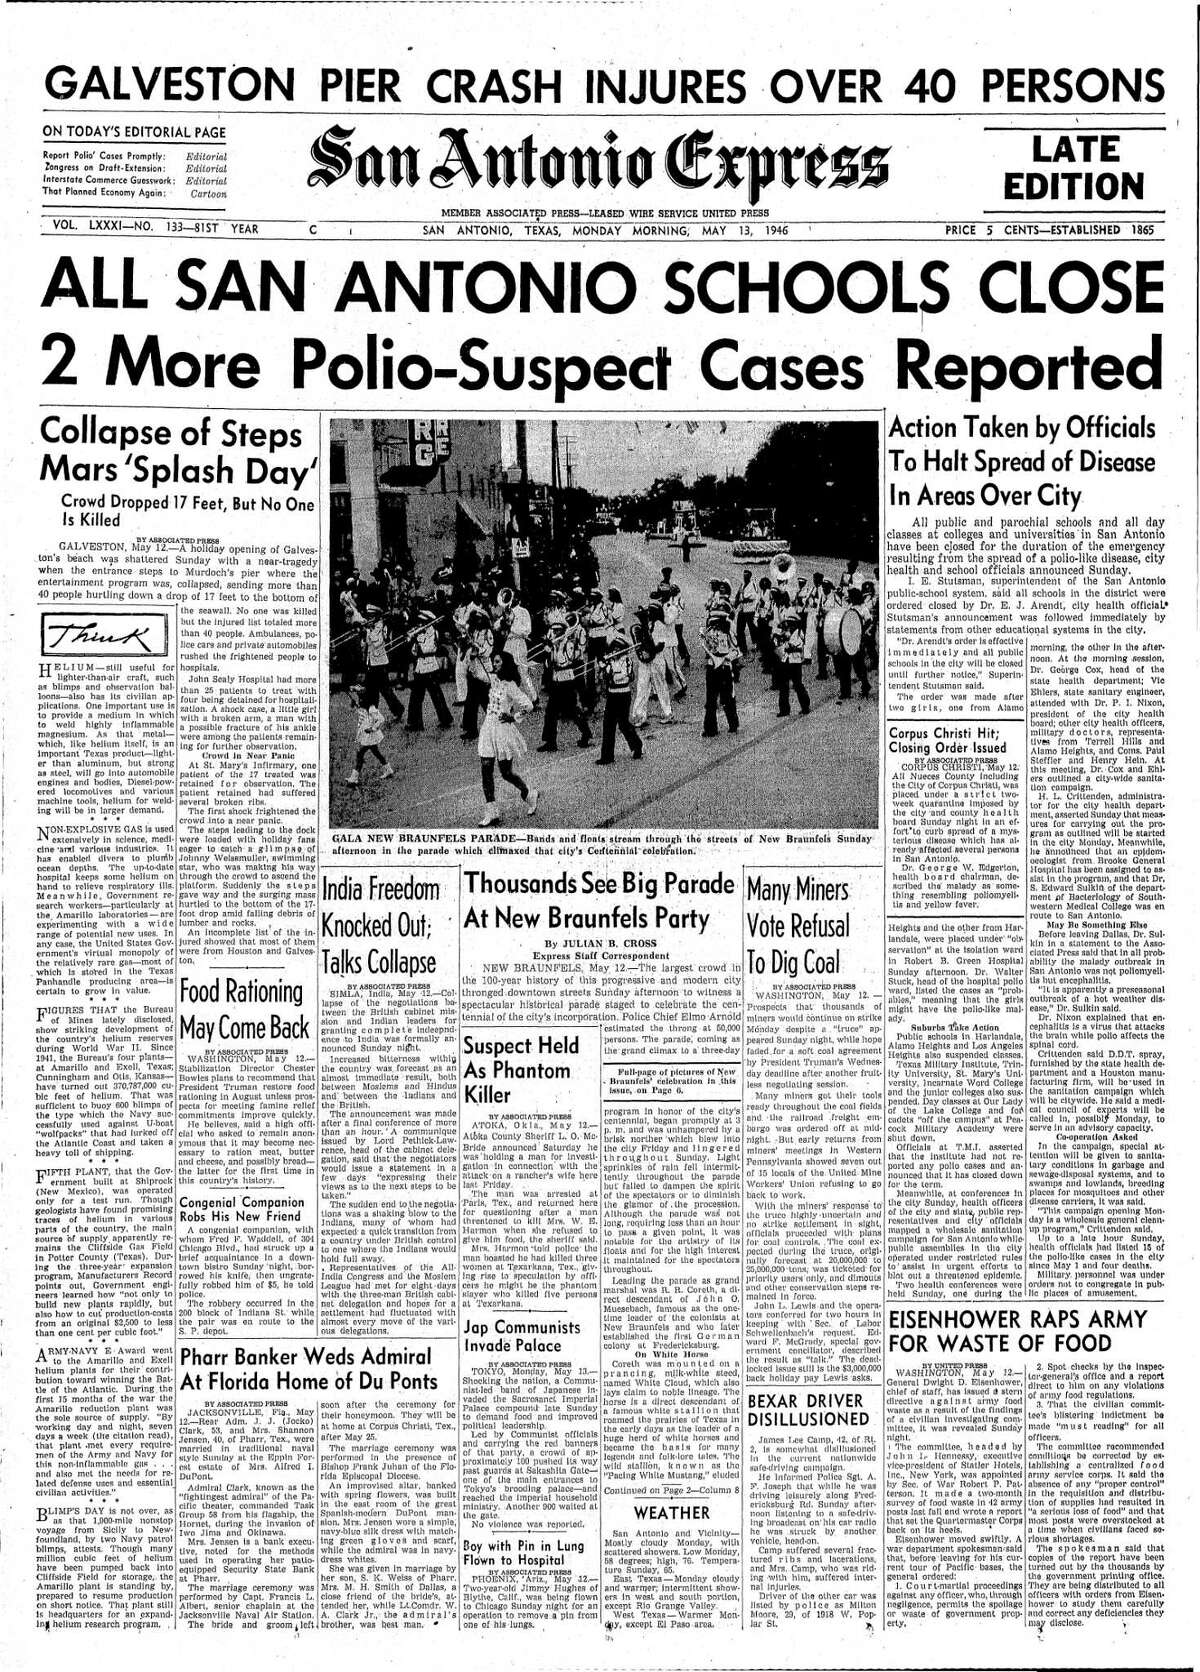 The front page of the May 13, 1946, edition of the San Antonio Express reports the major news of the day; all schools in the city were closed as two more possible cases of the potentially deadly polio virus were reported. Thirteen people would die that season from the disease; future years would see a resurgence of the virus until a vaccine was developed in the 1950s.